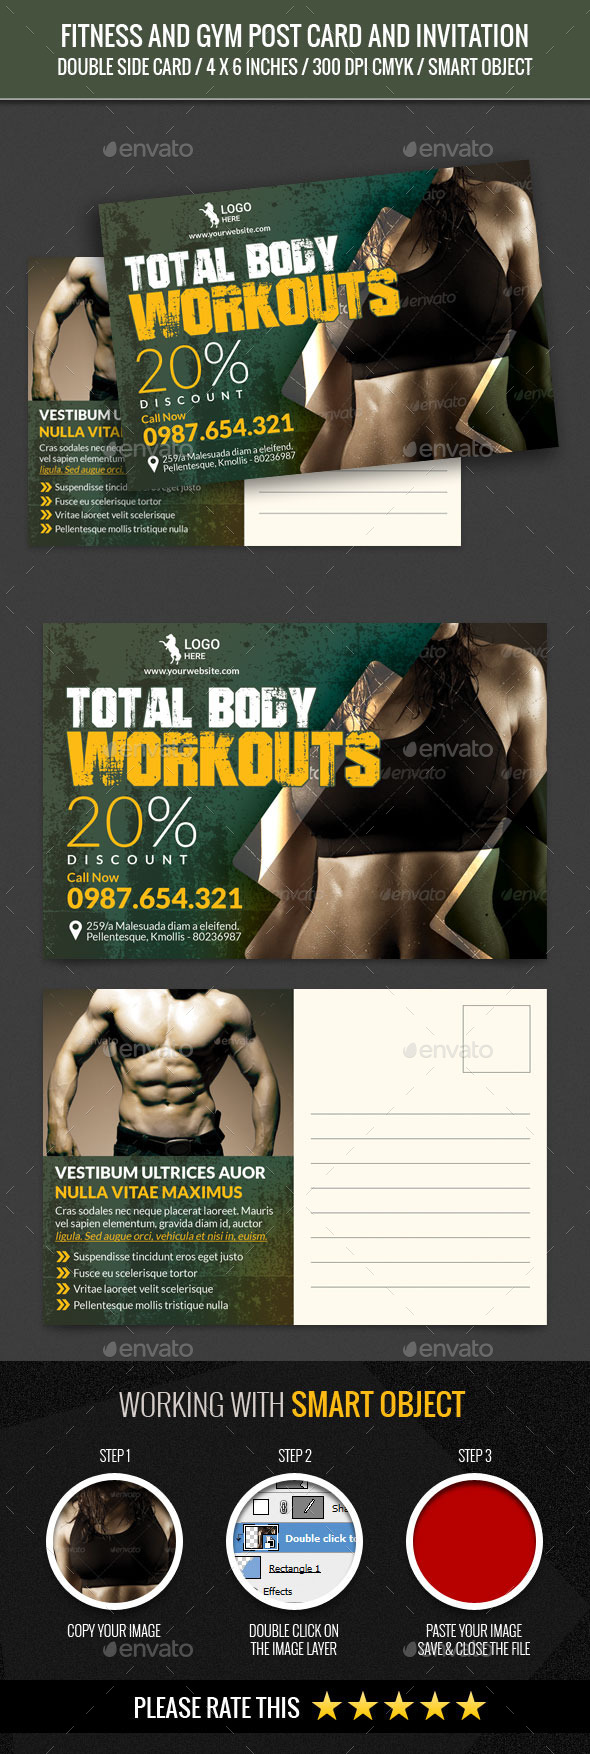 Fitness and GYM Post Card Template - Cards & Invites Print Templates